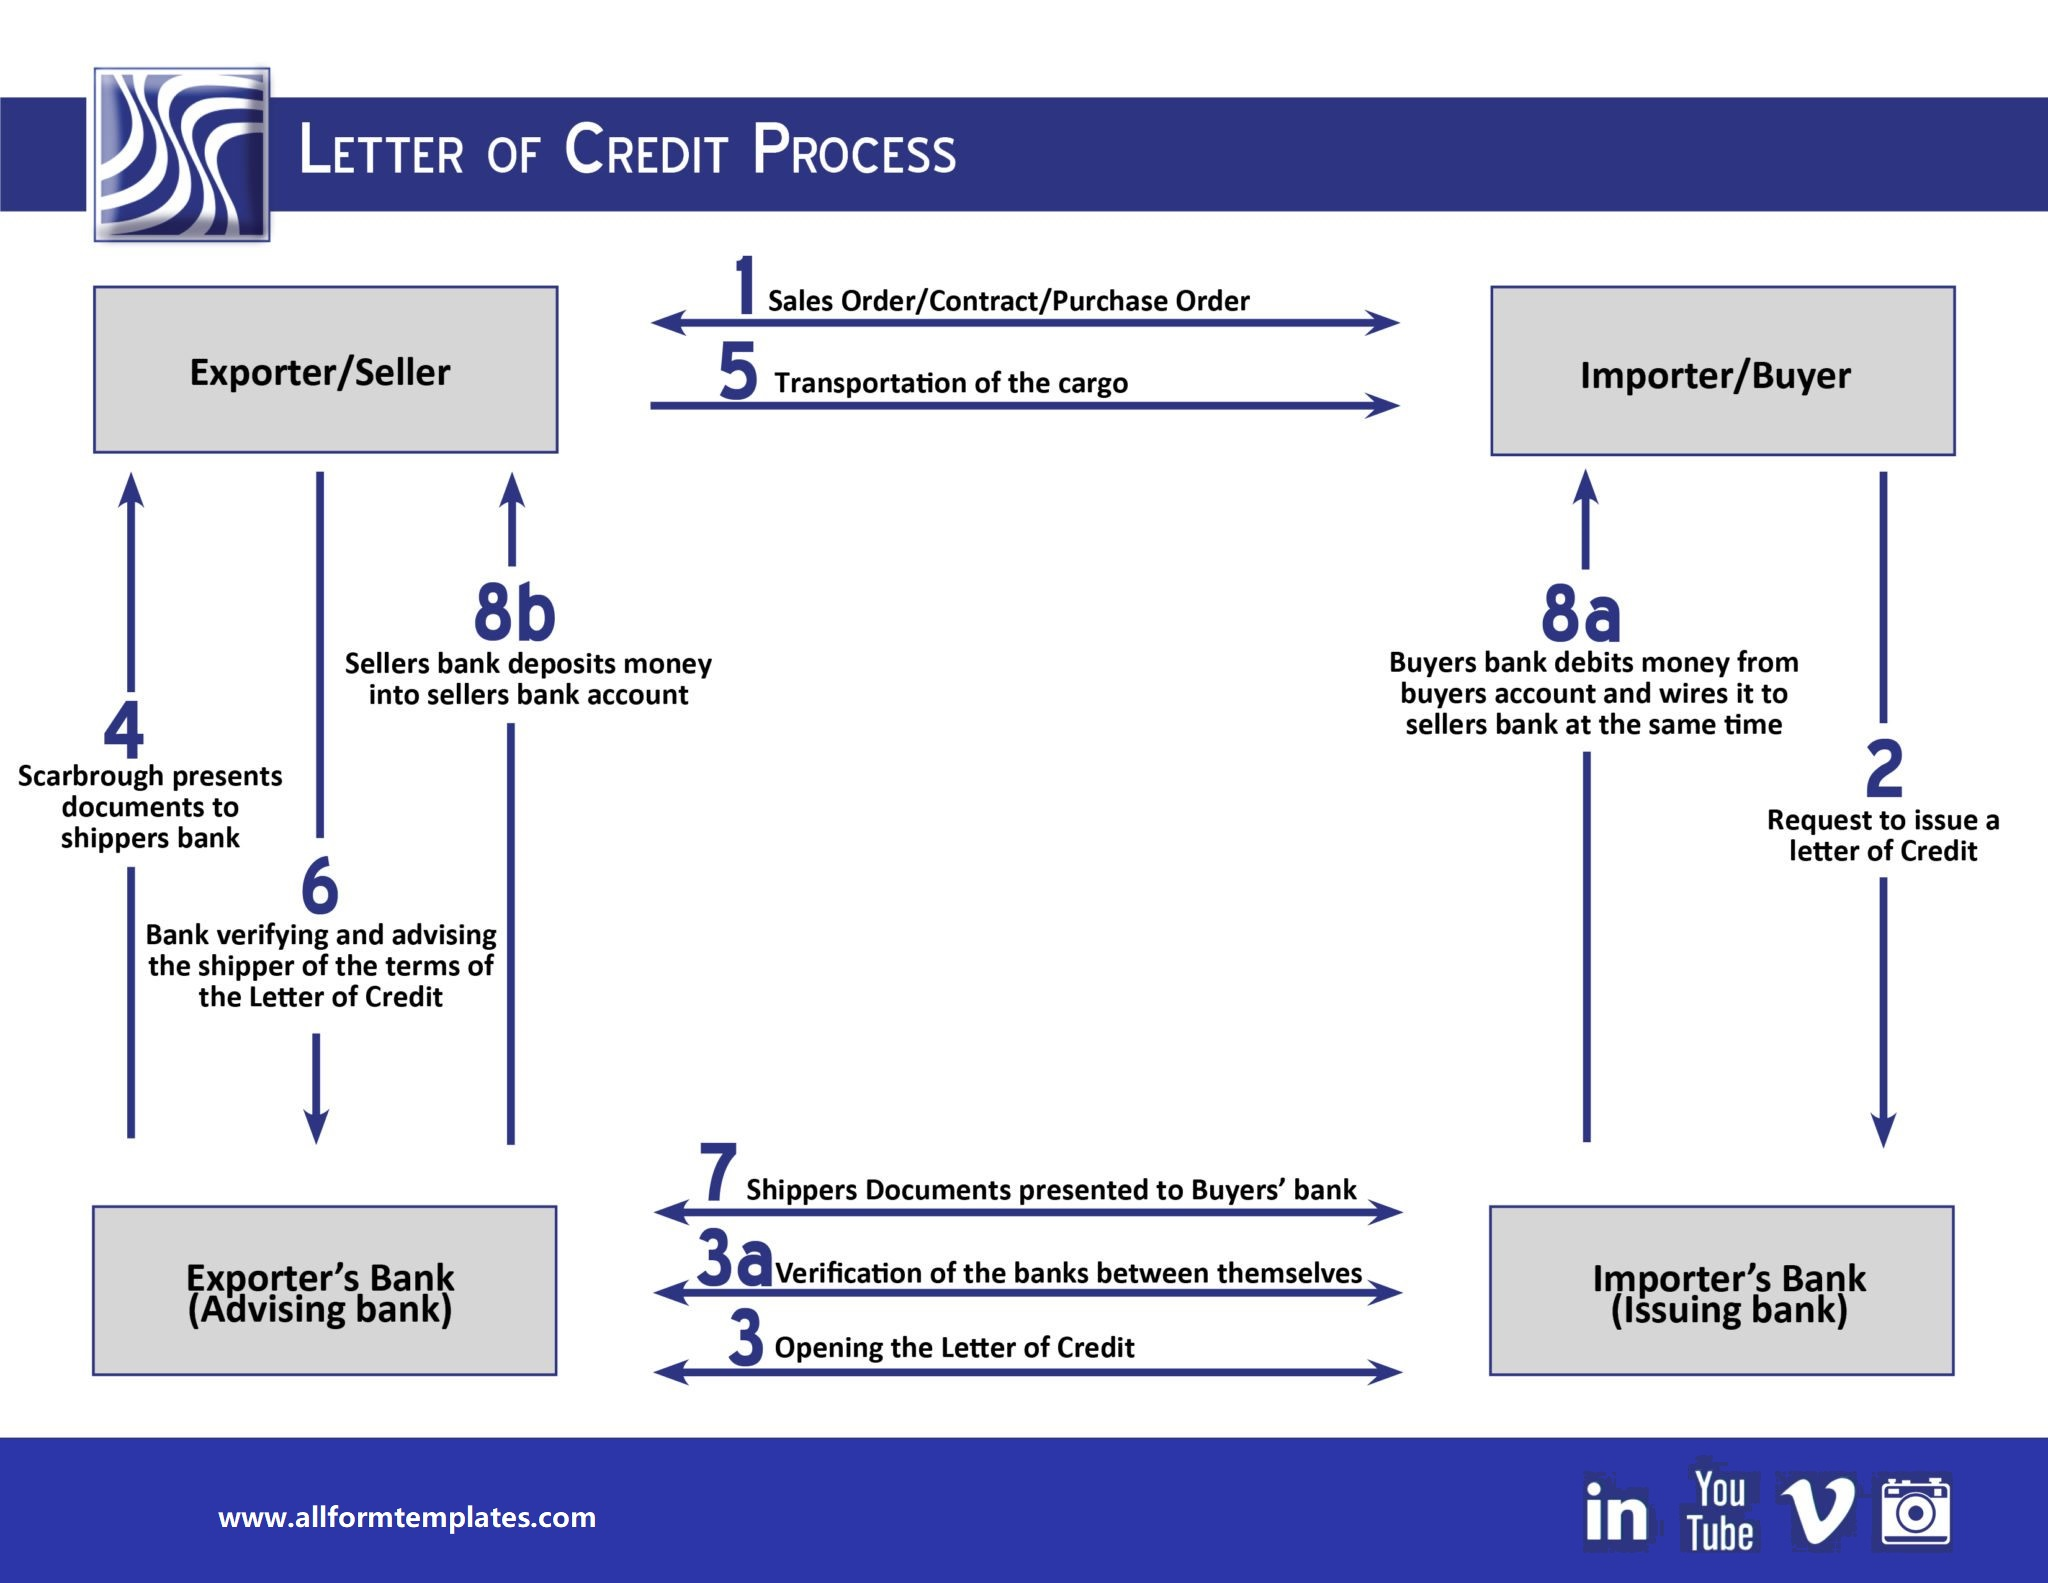 Letter-of-Credit process